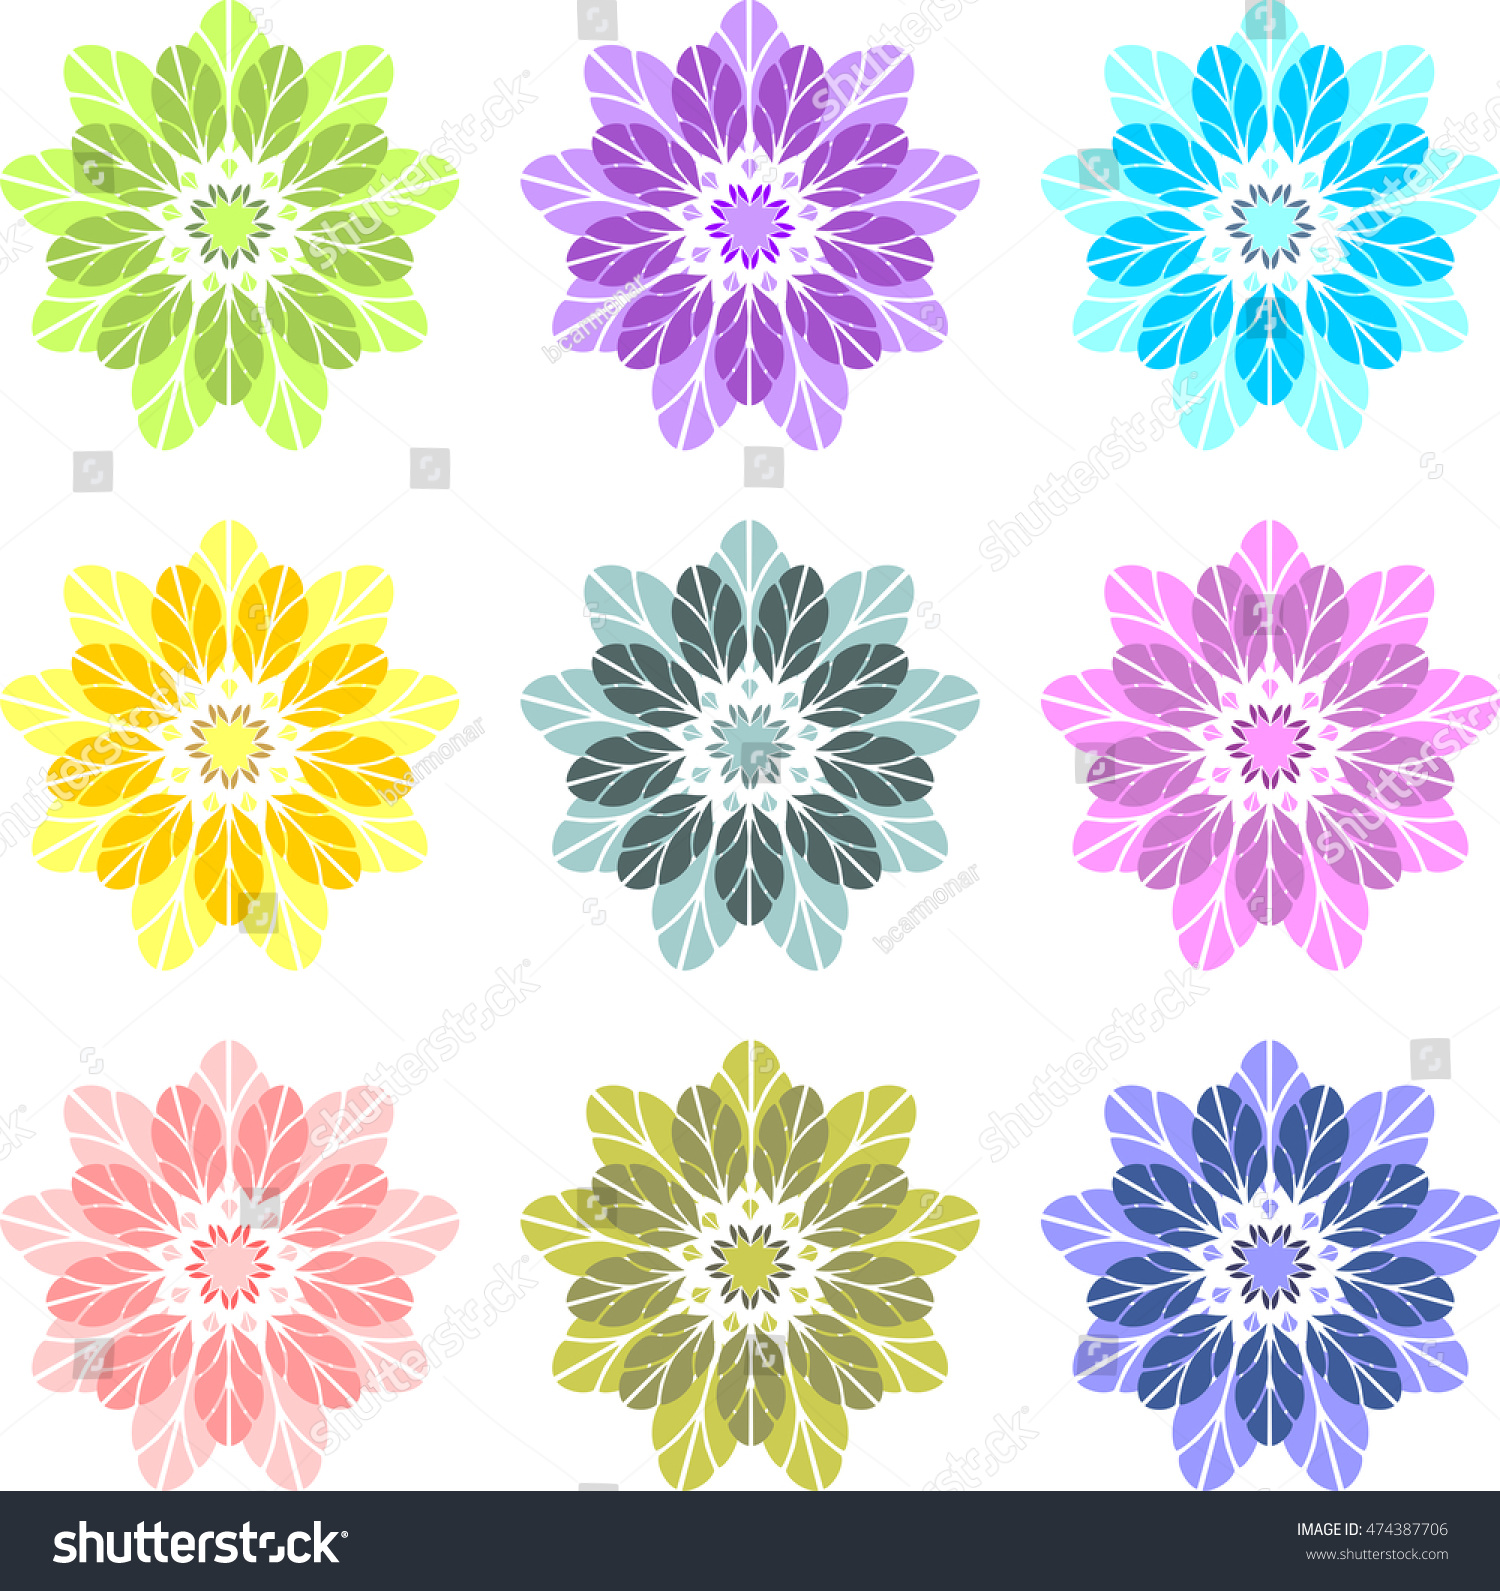 Flowers similar dahlia passionflower flower passion stock vector flowers similar to dahlia passionflower flower of the passion flower of lotus izmirmasajfo Choice Image